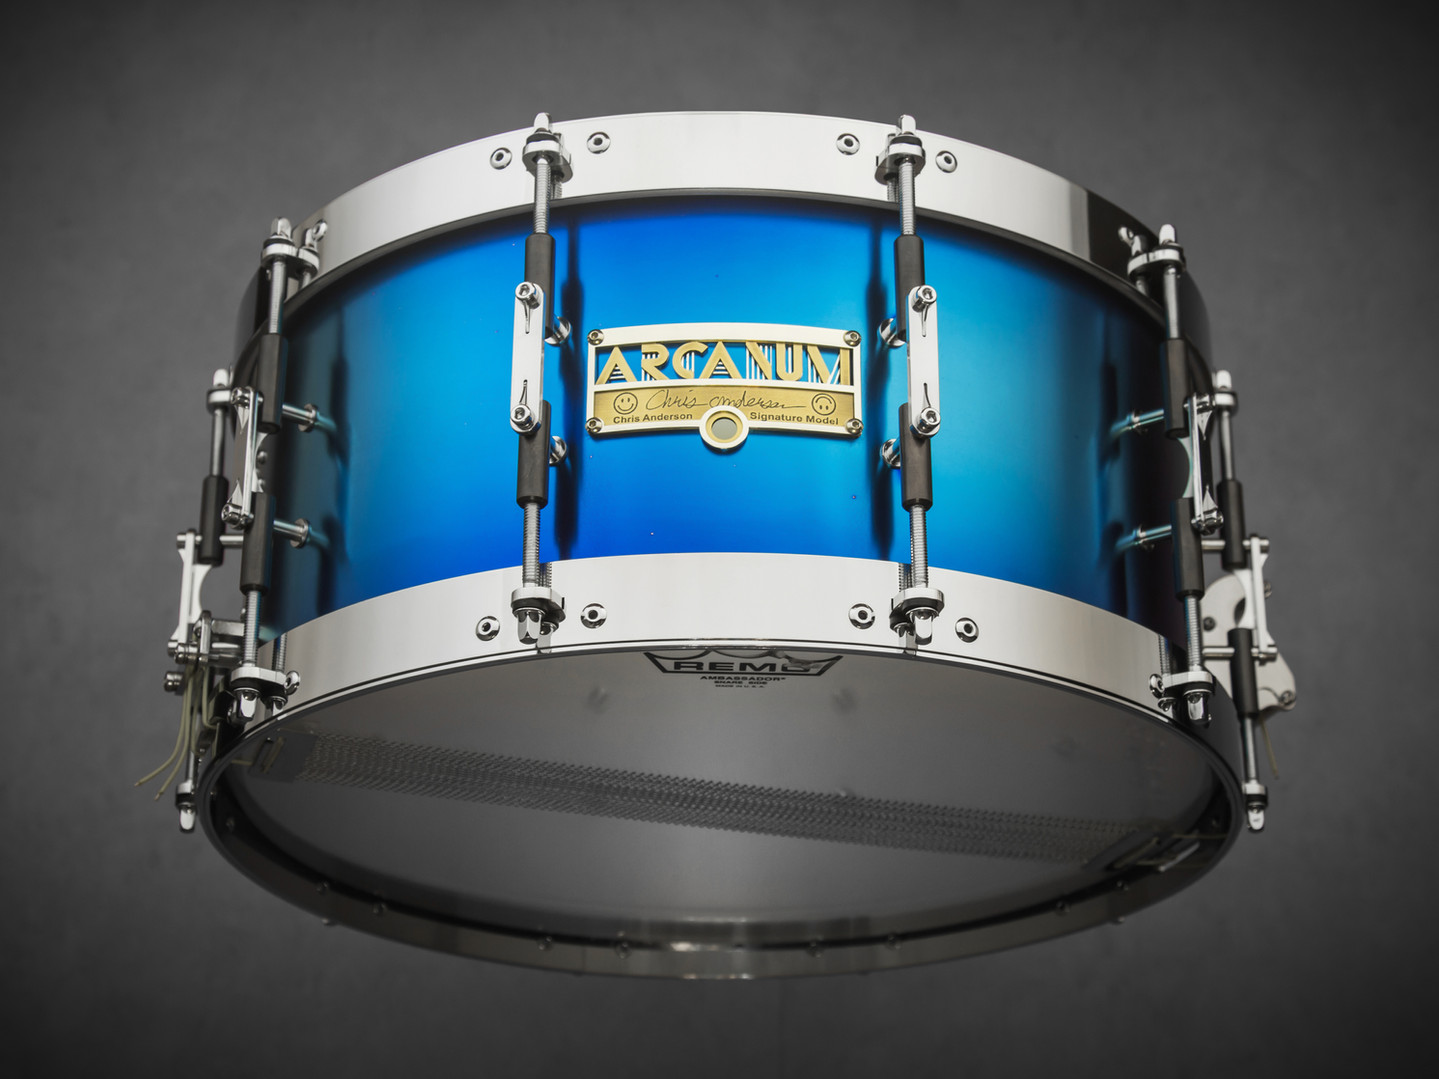 Chris Anderson Signature snare drum